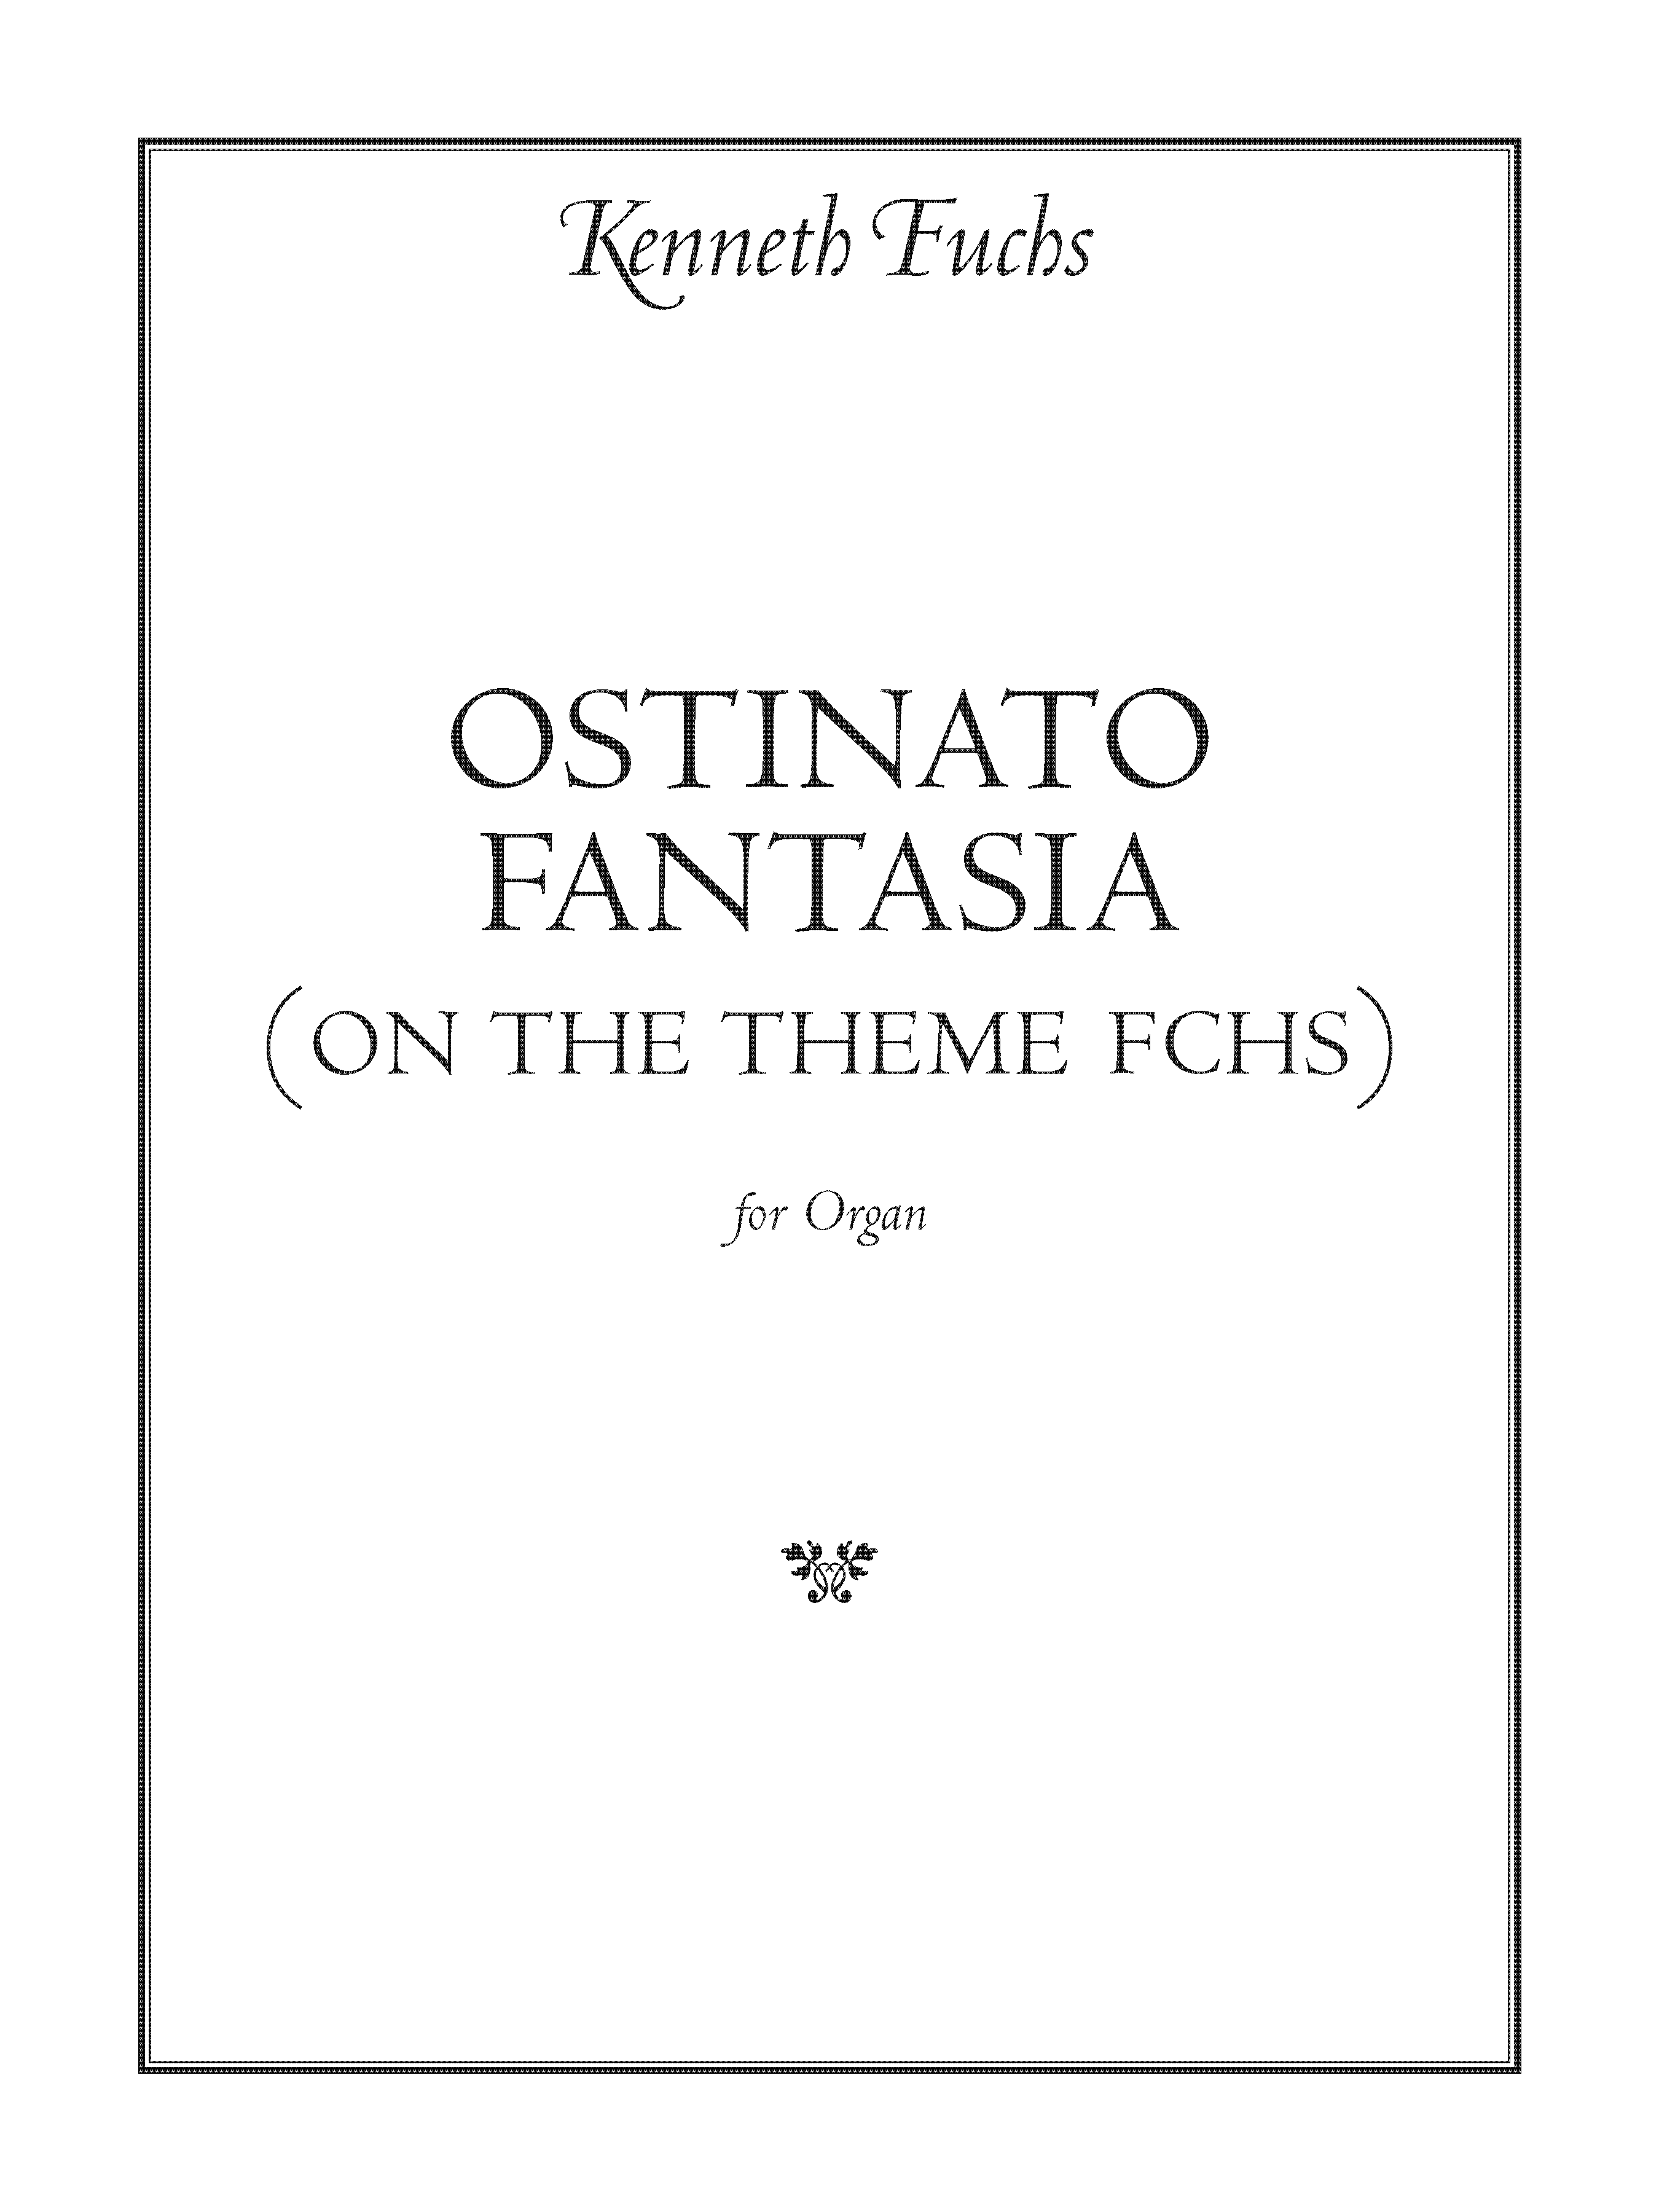 Ostinato Fantasia for Organ